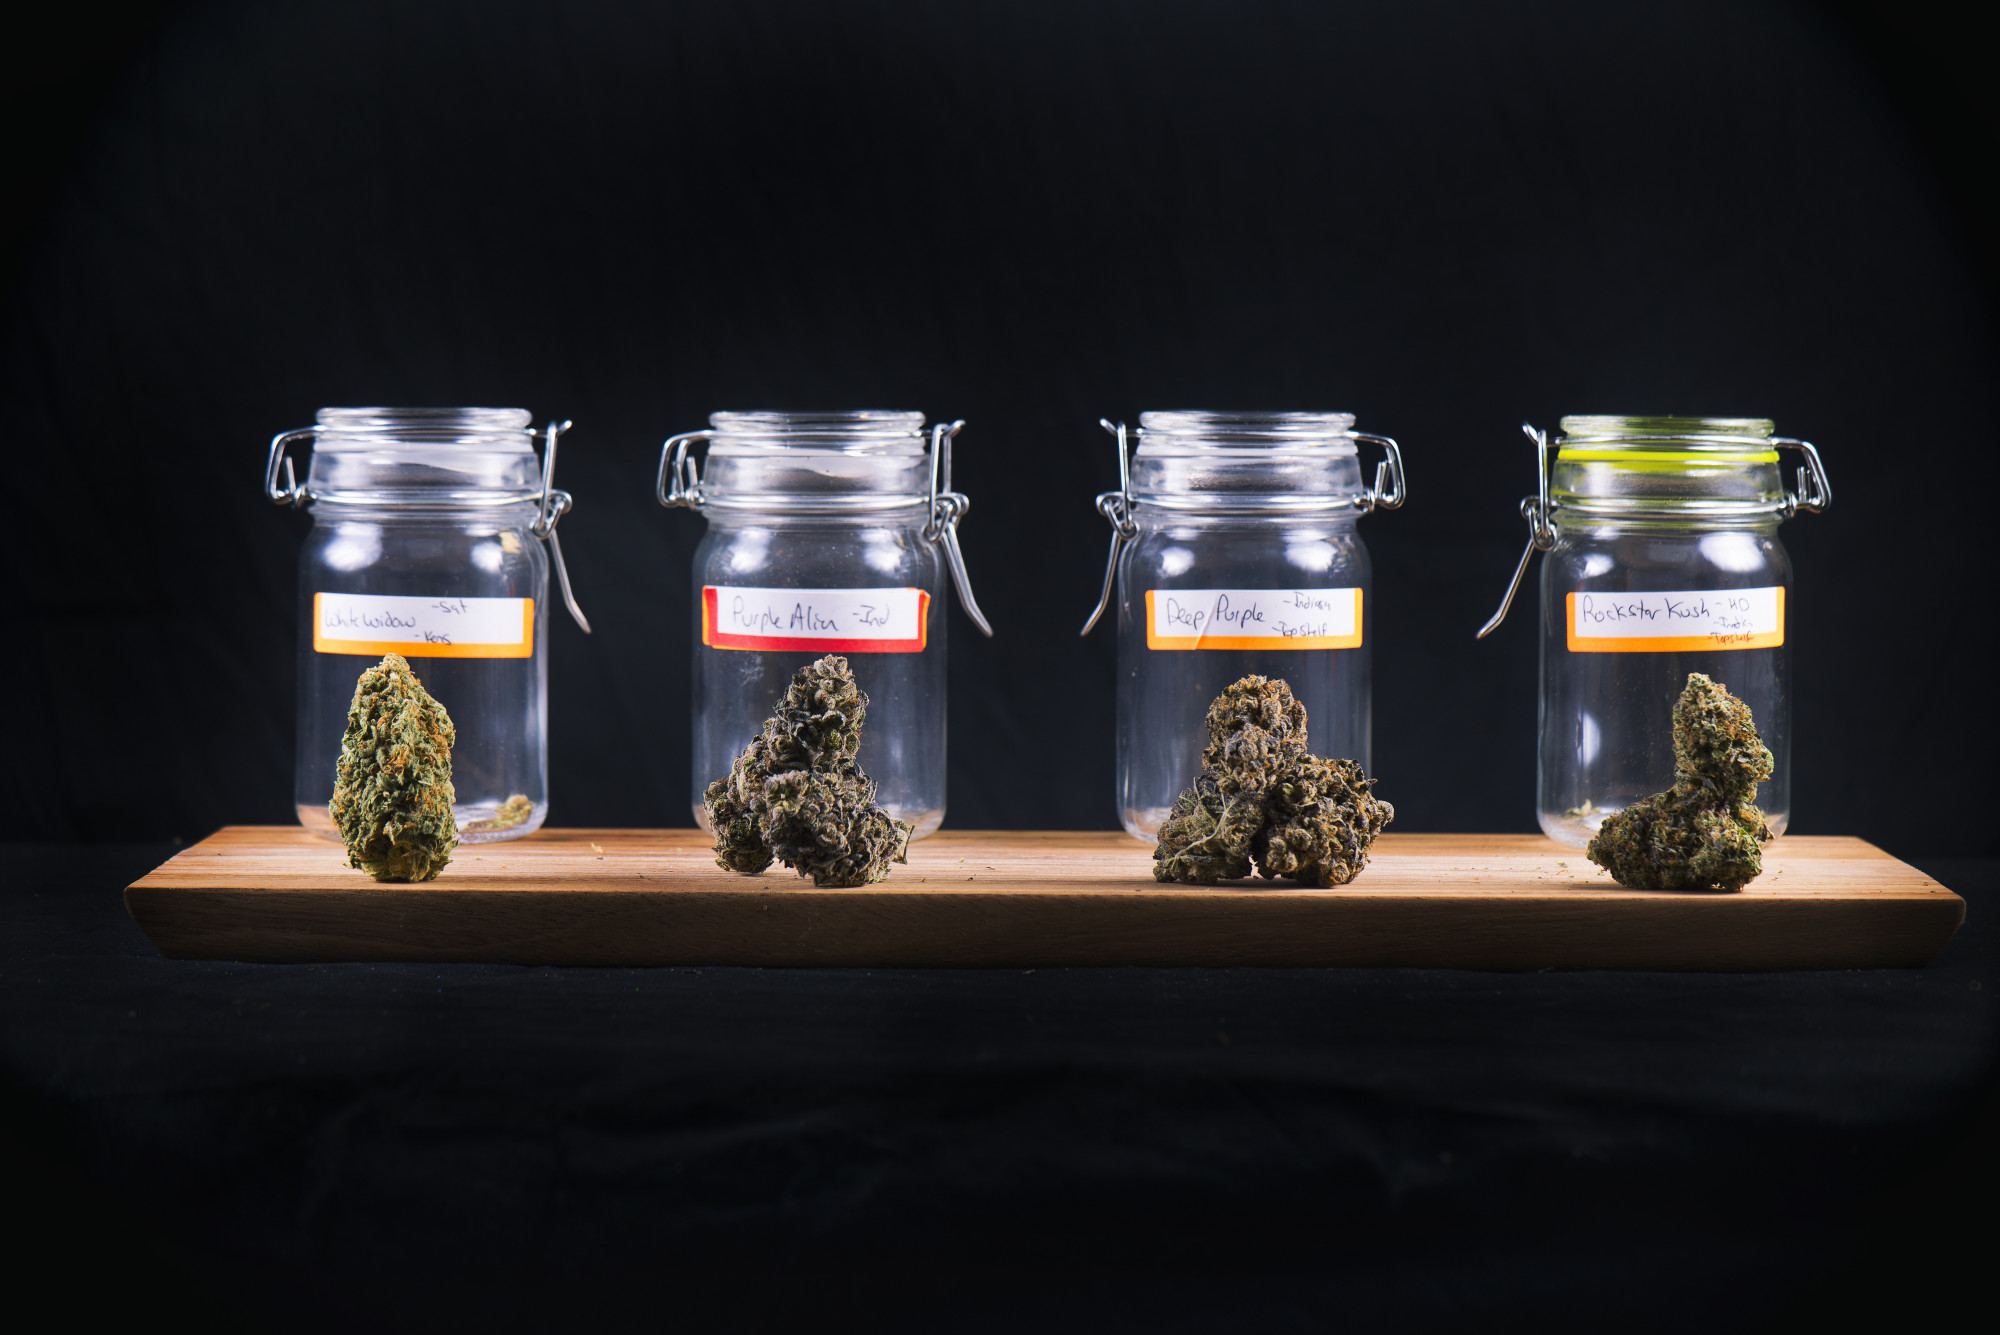 Sativa Selector, Indica Indicator: Your Premier Marijuana Strain Guide